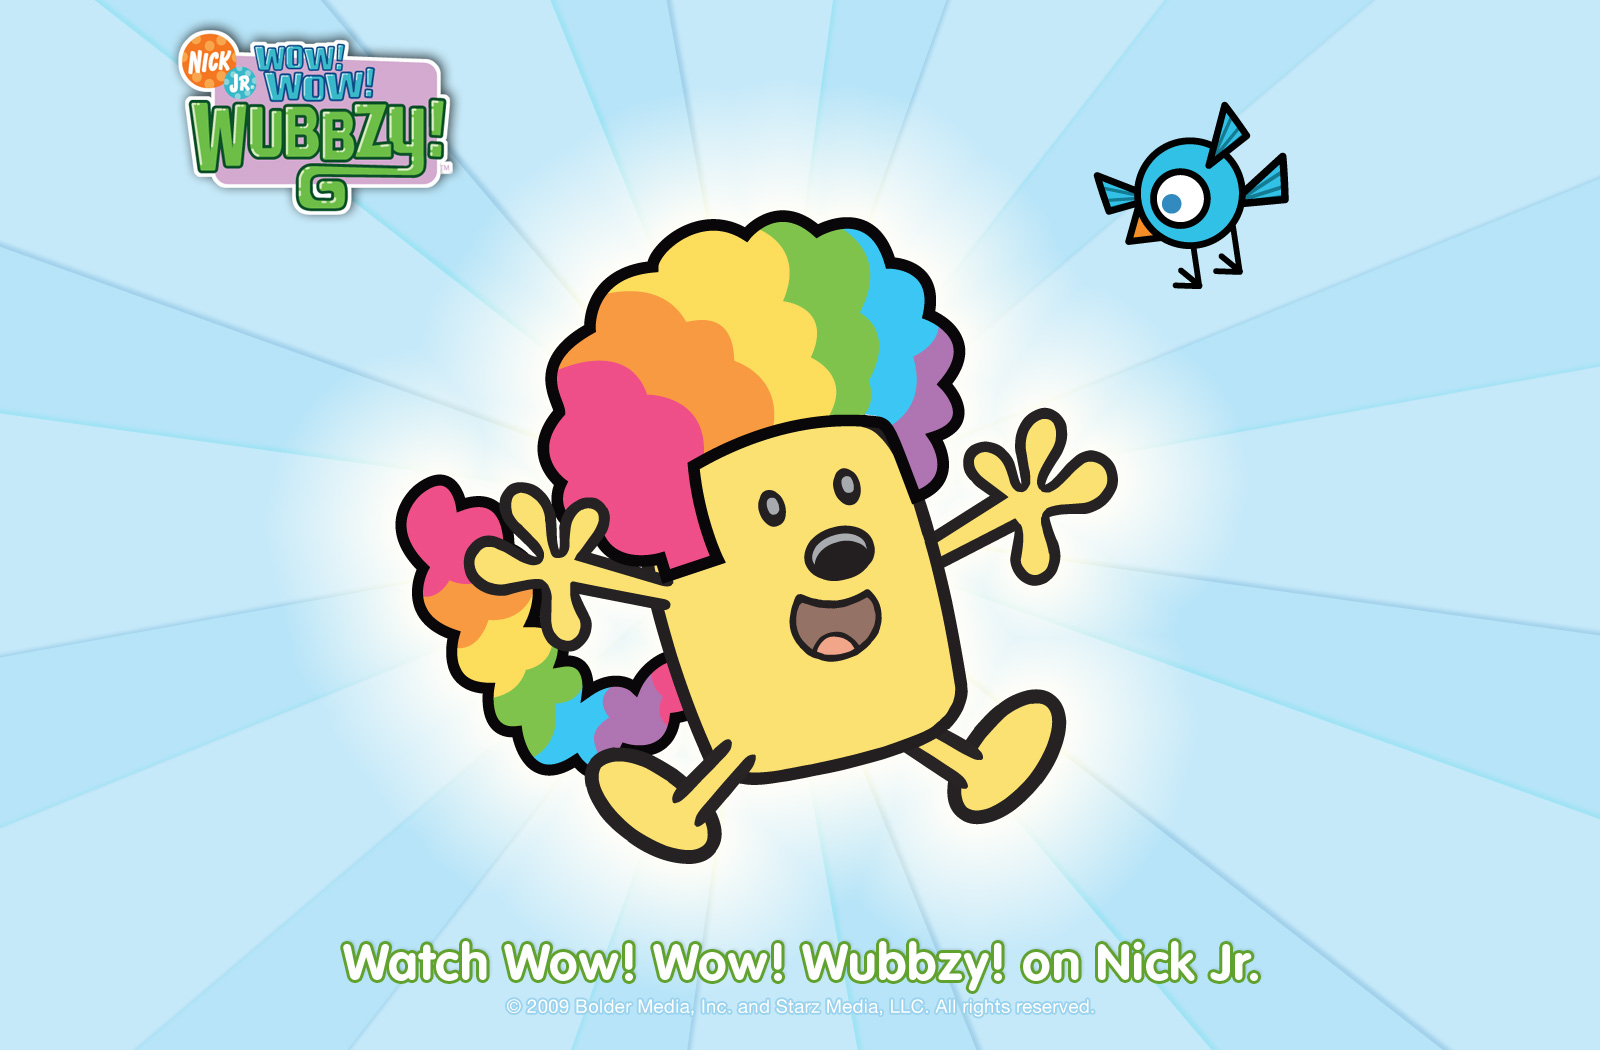 Wow wow wubbzy porn pictures naked photo